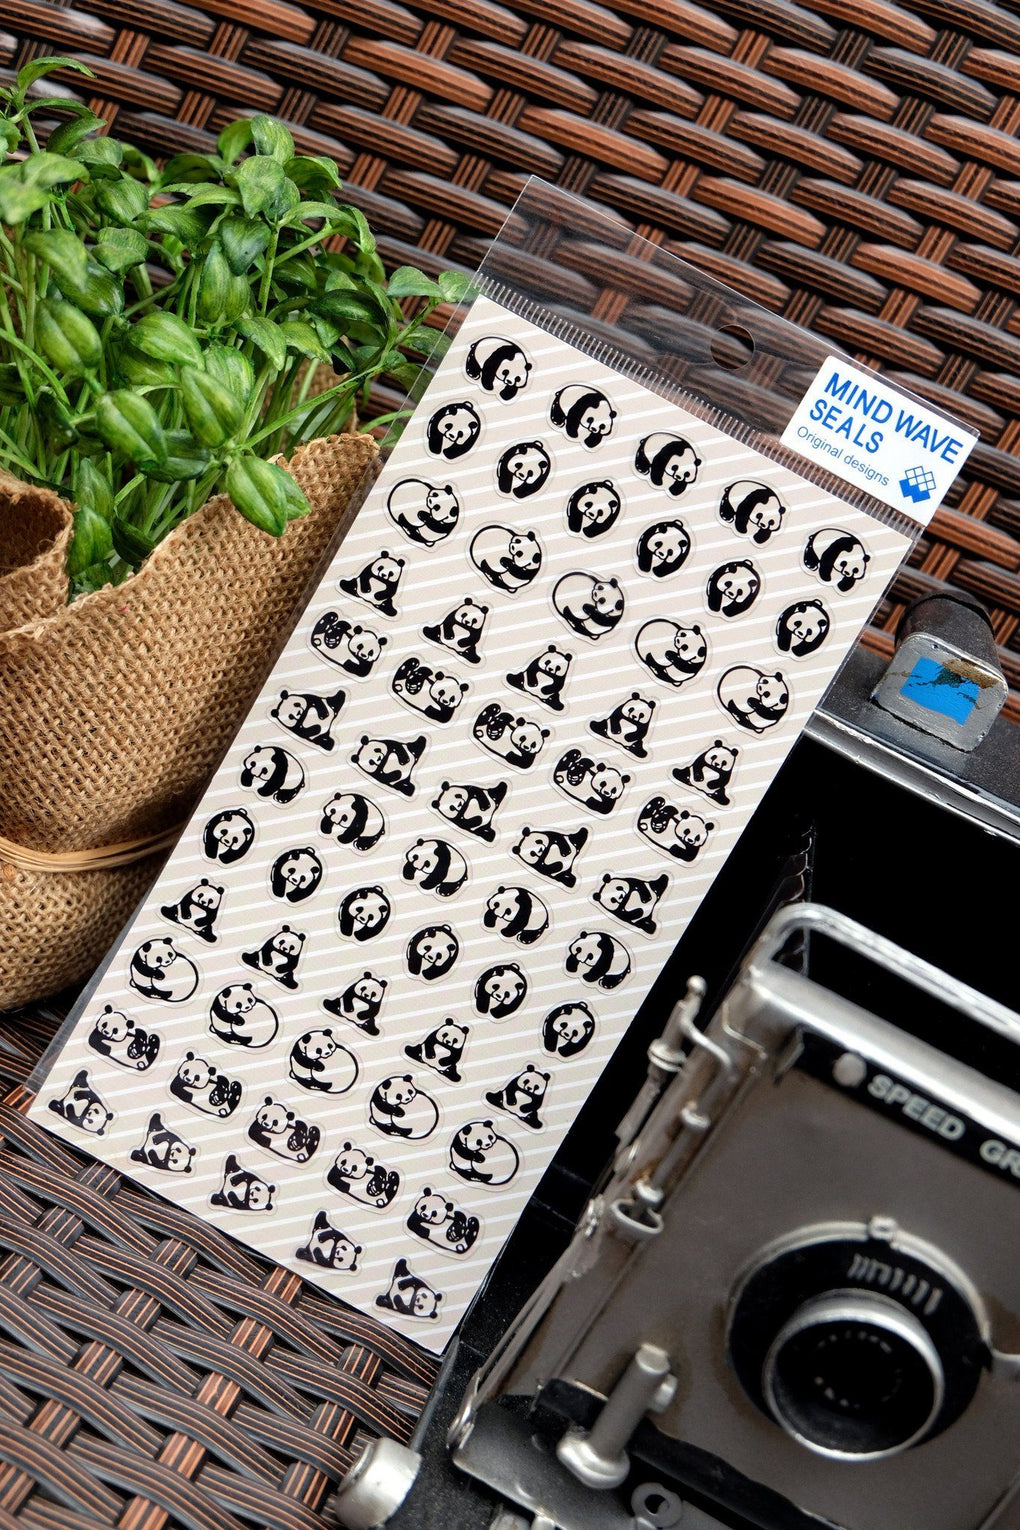 Black And White Panda Sticker- 77386 Stickers Mind Wave